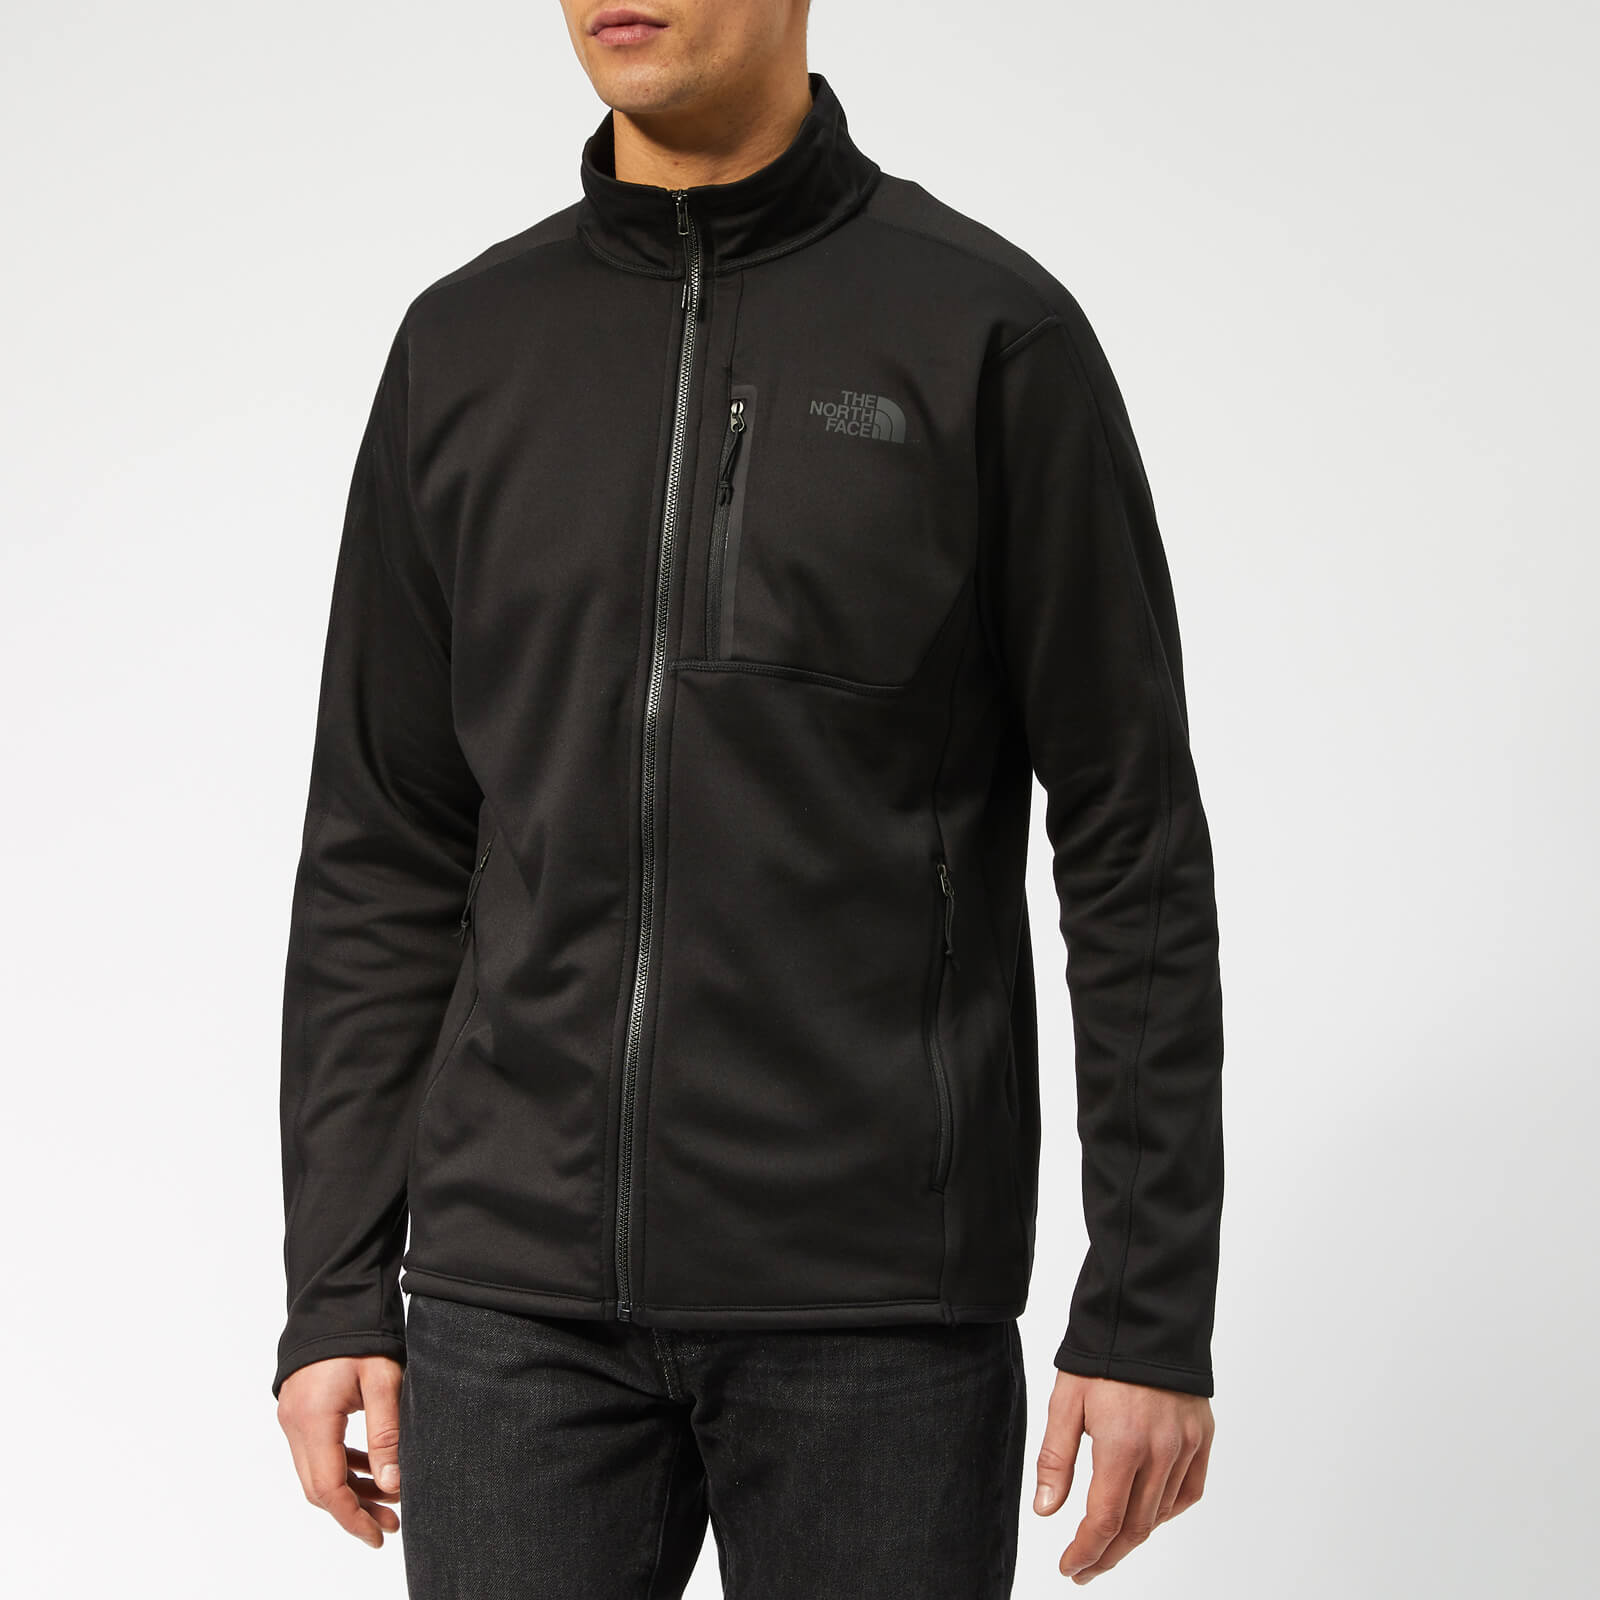 e7207ce46 The North Face Men's Canyonlands Full Zip Jacket - TNF Black